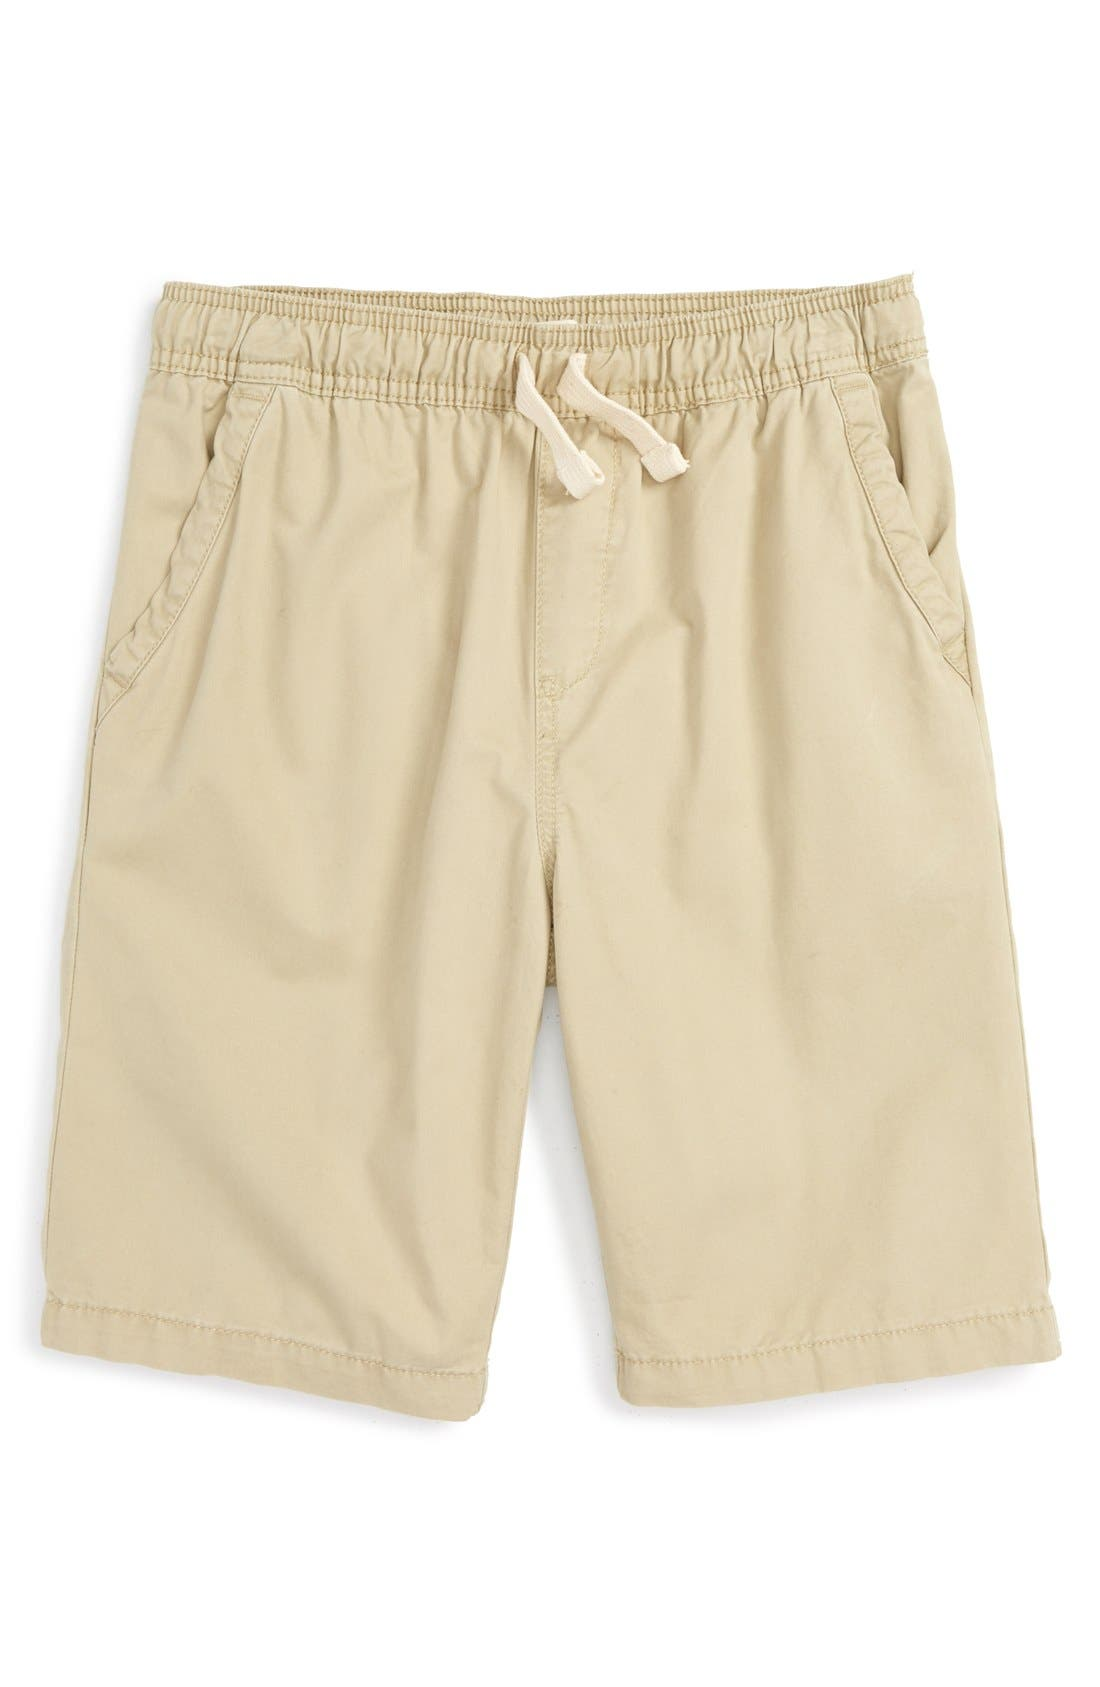 Main Image - Tucker + Tate Cotton Twill Shorts (Toddler Boys, Little Boys & Big Boys)